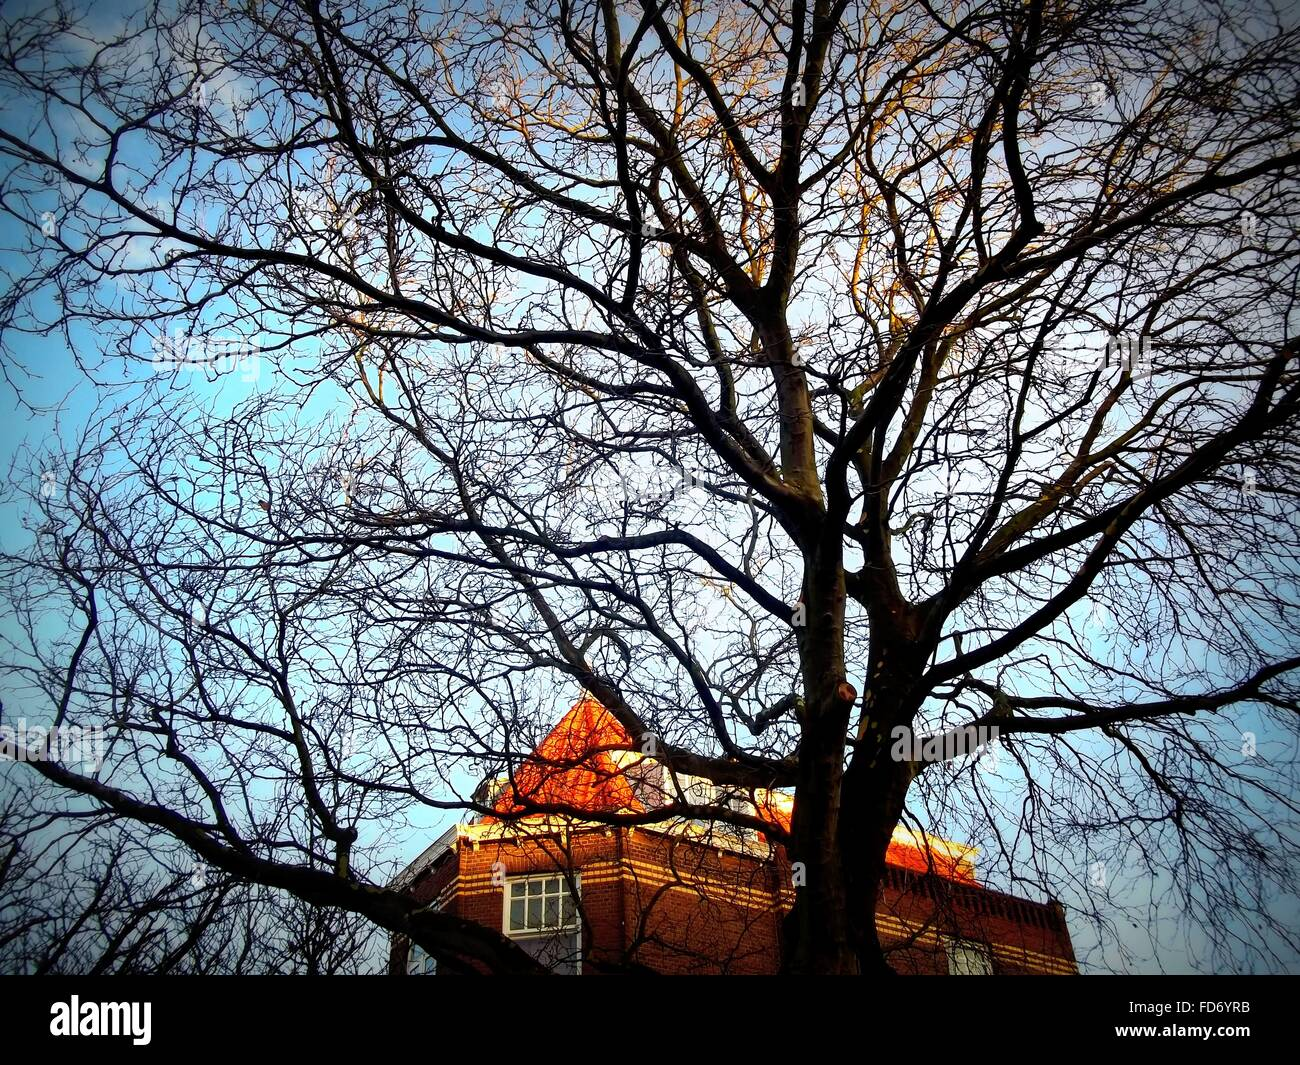 Close-Up View Of Leafless Tree With Top Of Building In Background - Stock Image